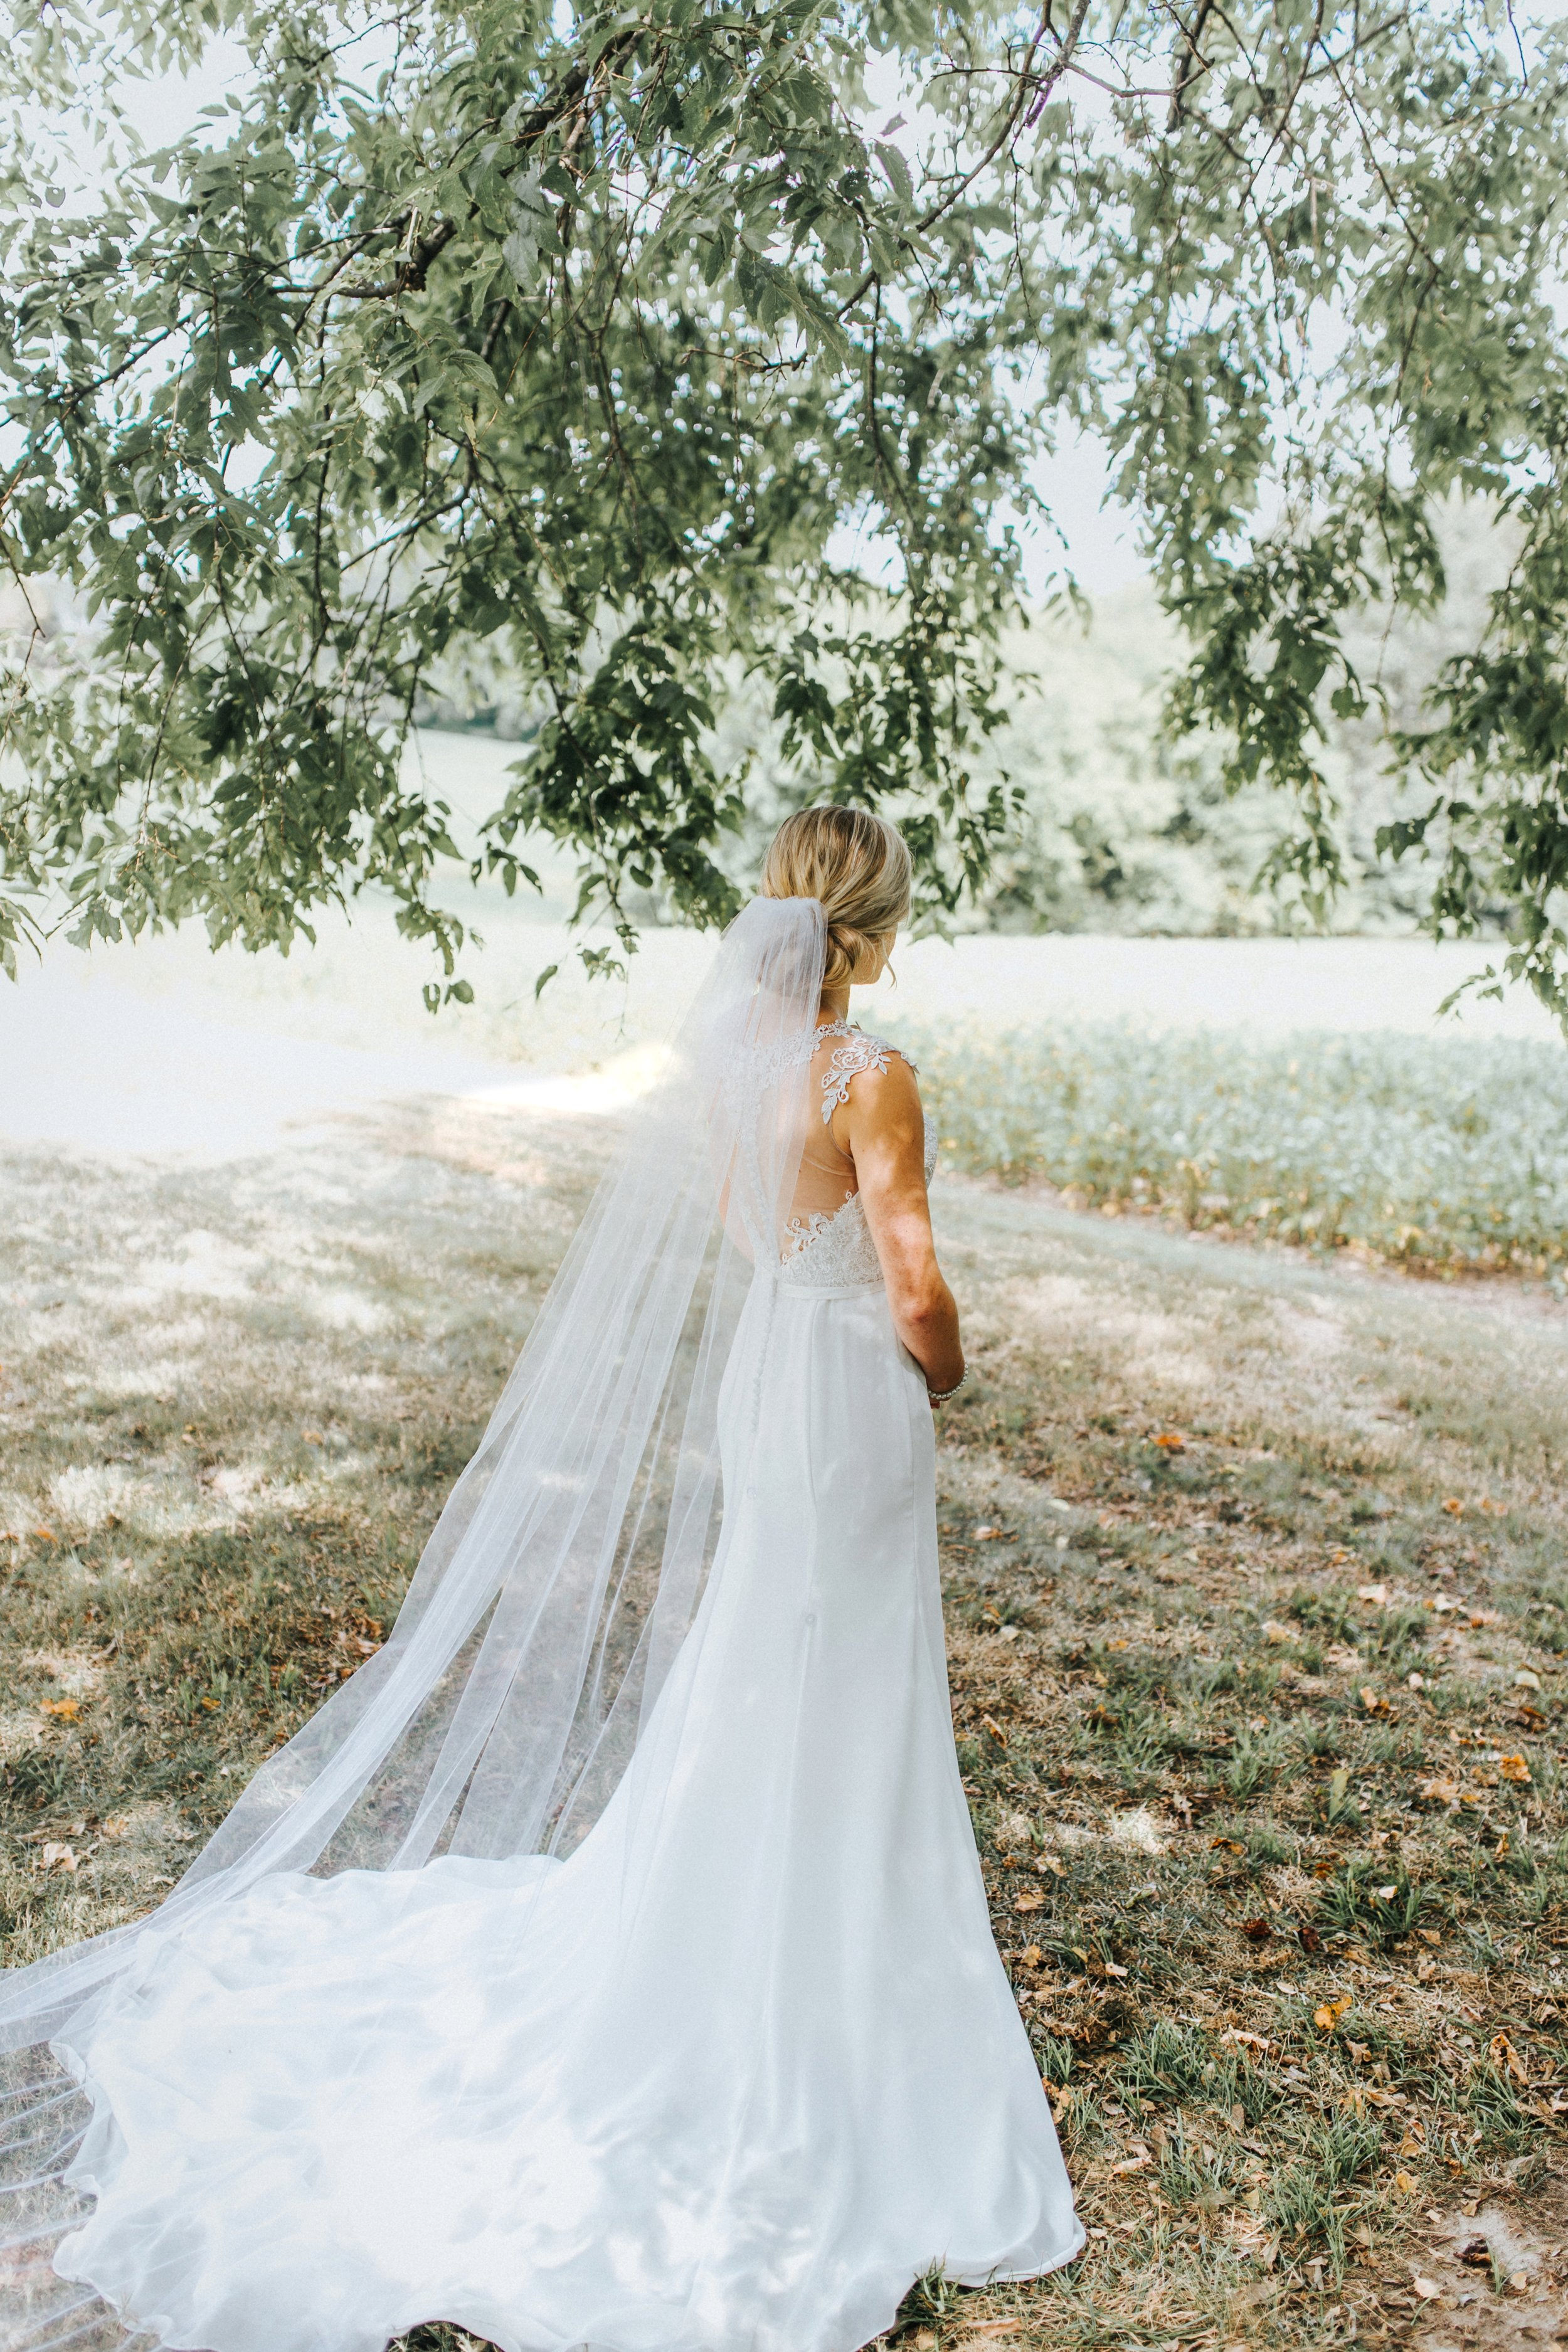 Virginia wedding photographer, Charlottesville wedding photographer, the hunt at Selma wedding, amelia virginia wedding photographer_0155.jpg